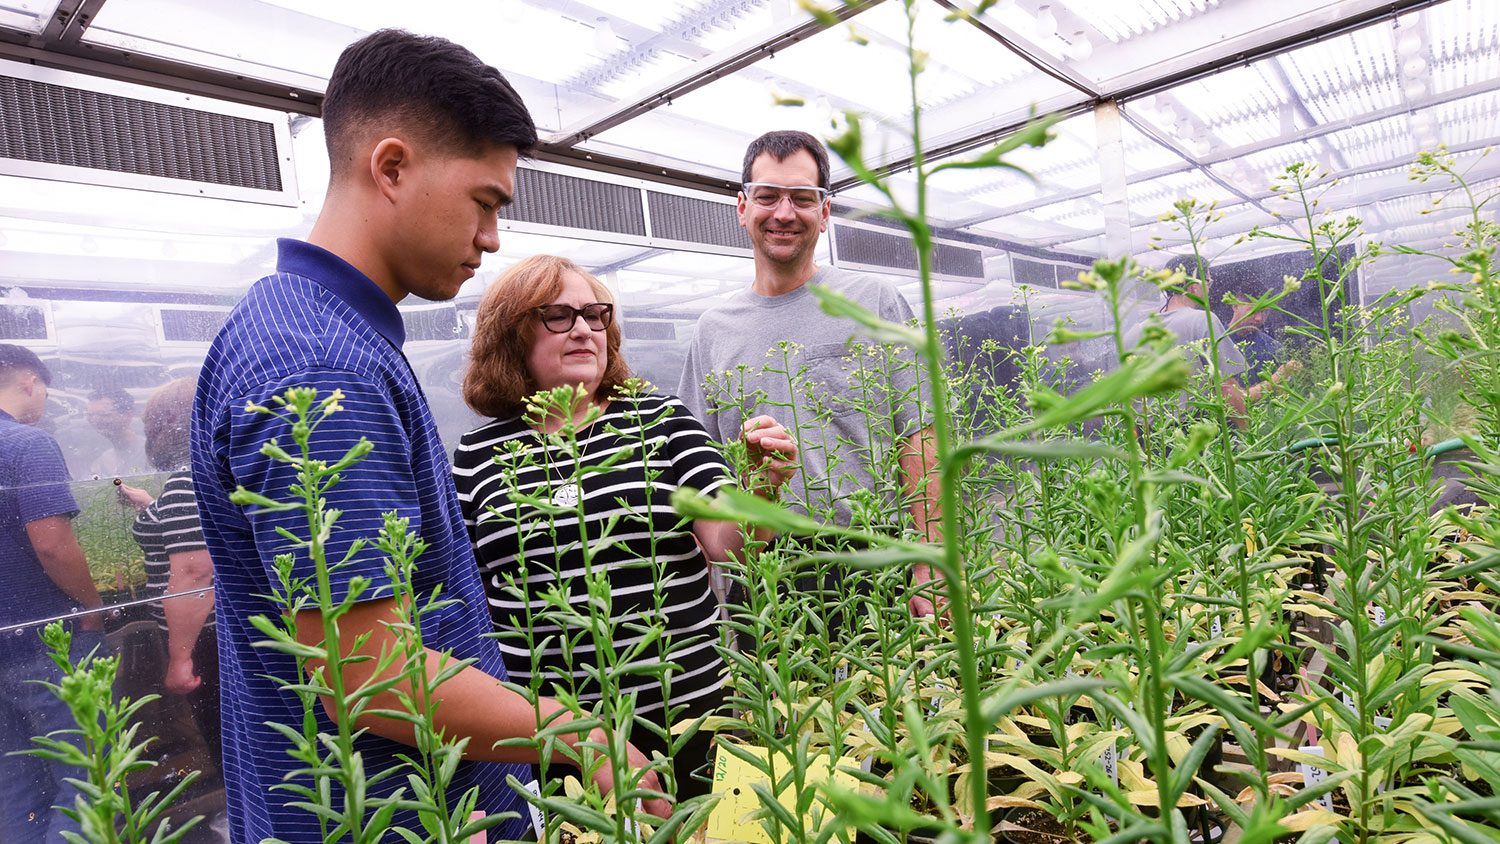 Three people examine plants in a large, lighted chamber.